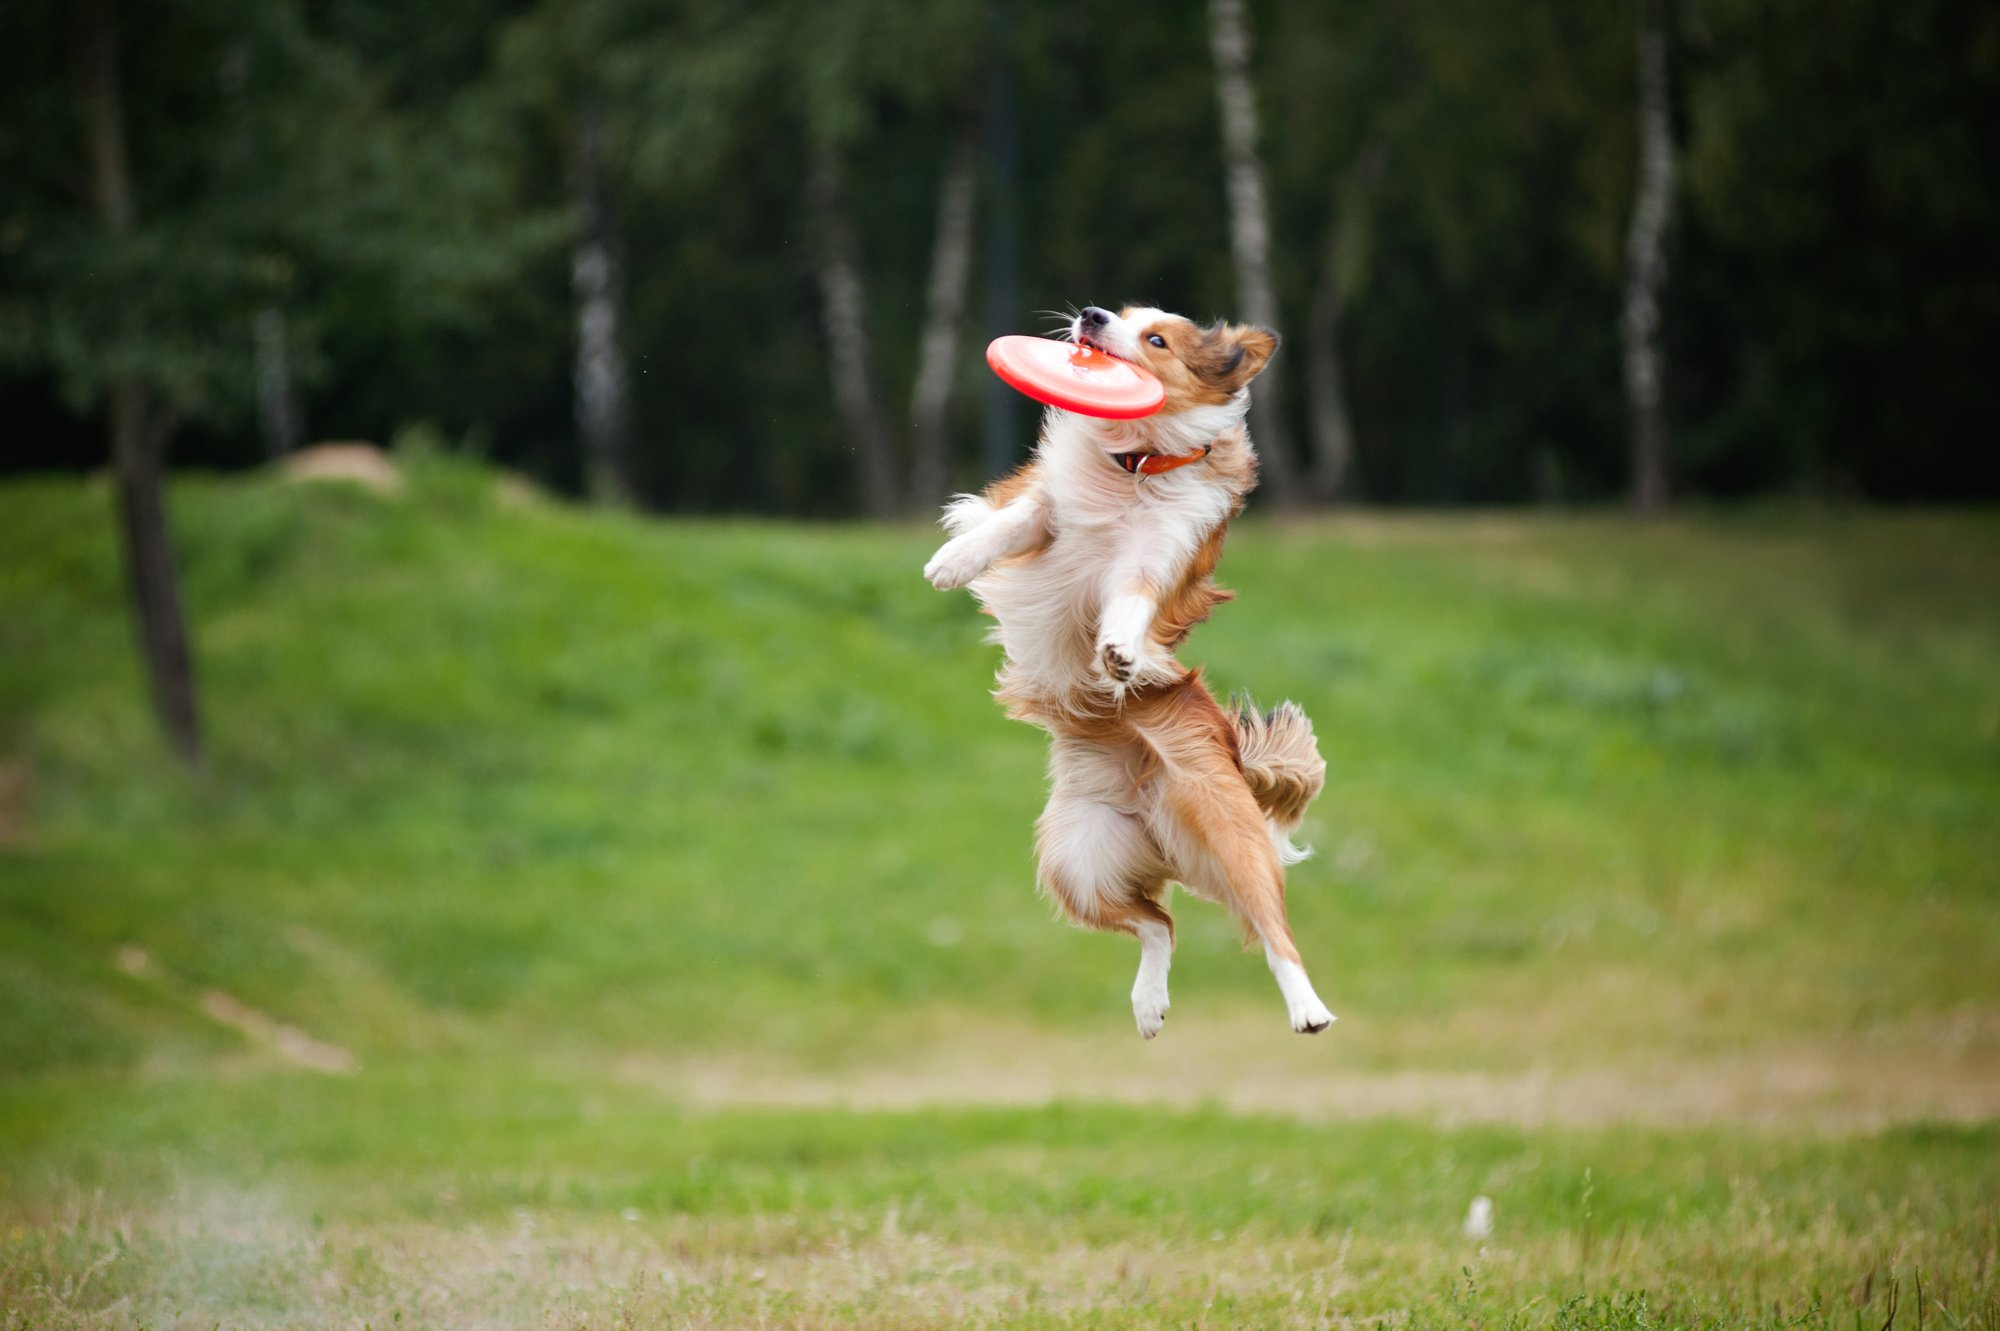 Border Collie playing frisbee - mental stipulation can help your dog live longer